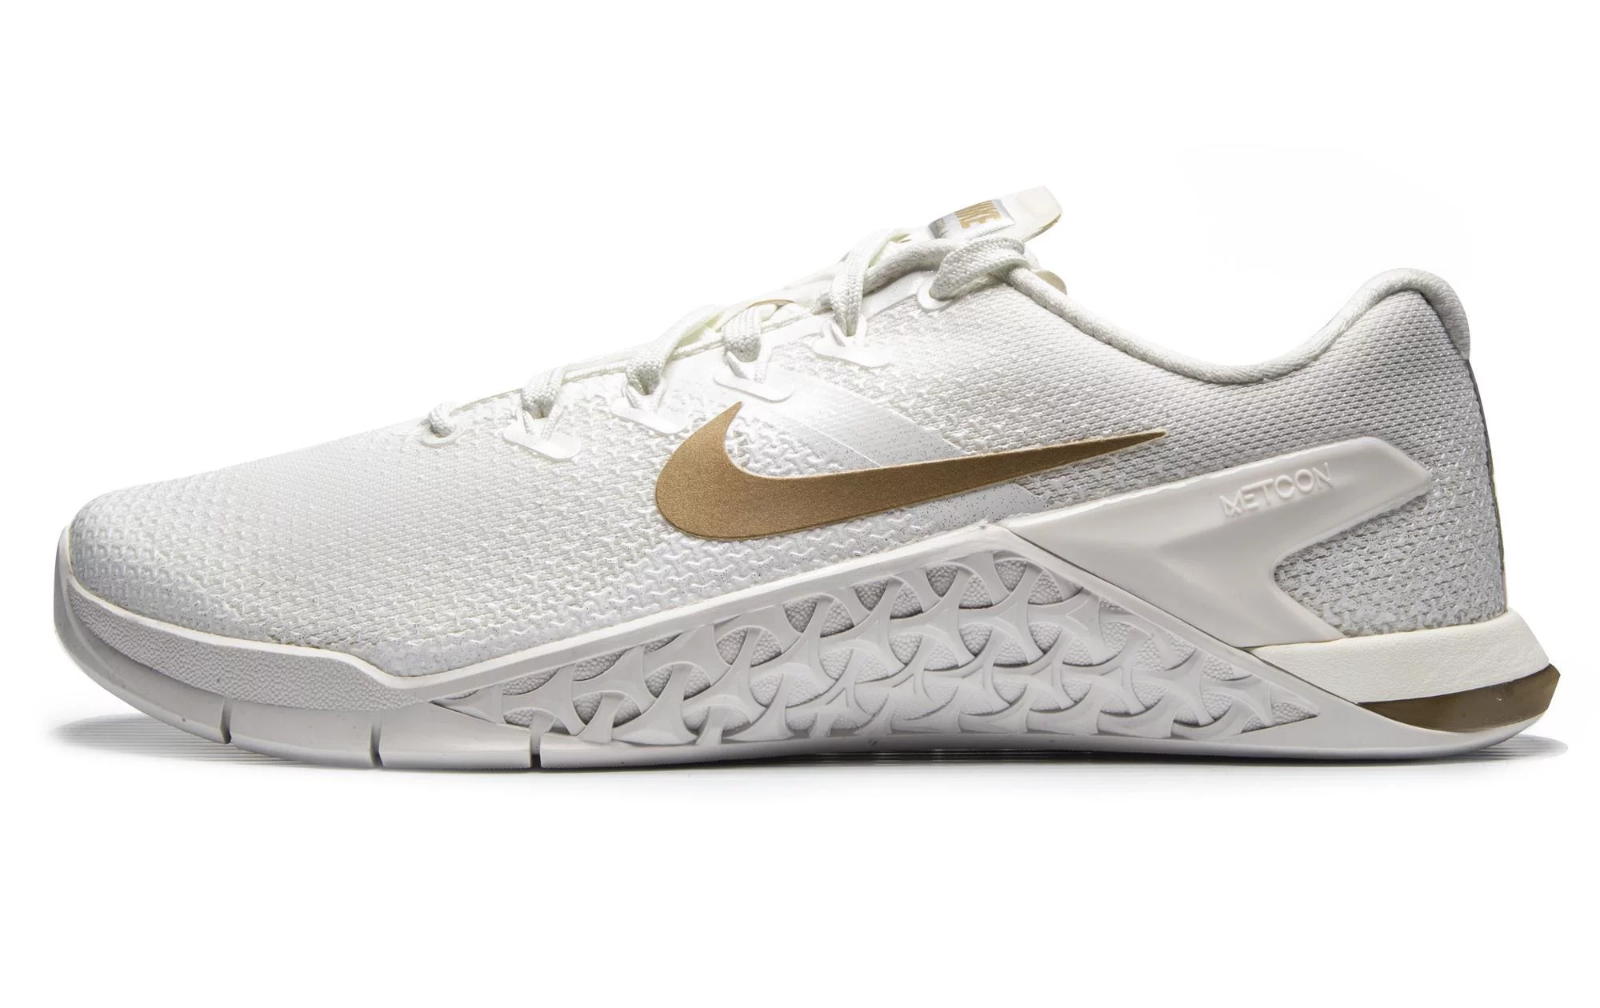 NIKE METCON 4 CHAMPAGNE  METALLIC gold  (AV2141 120) WOMEN'S TRAINERS UK 6-6.5